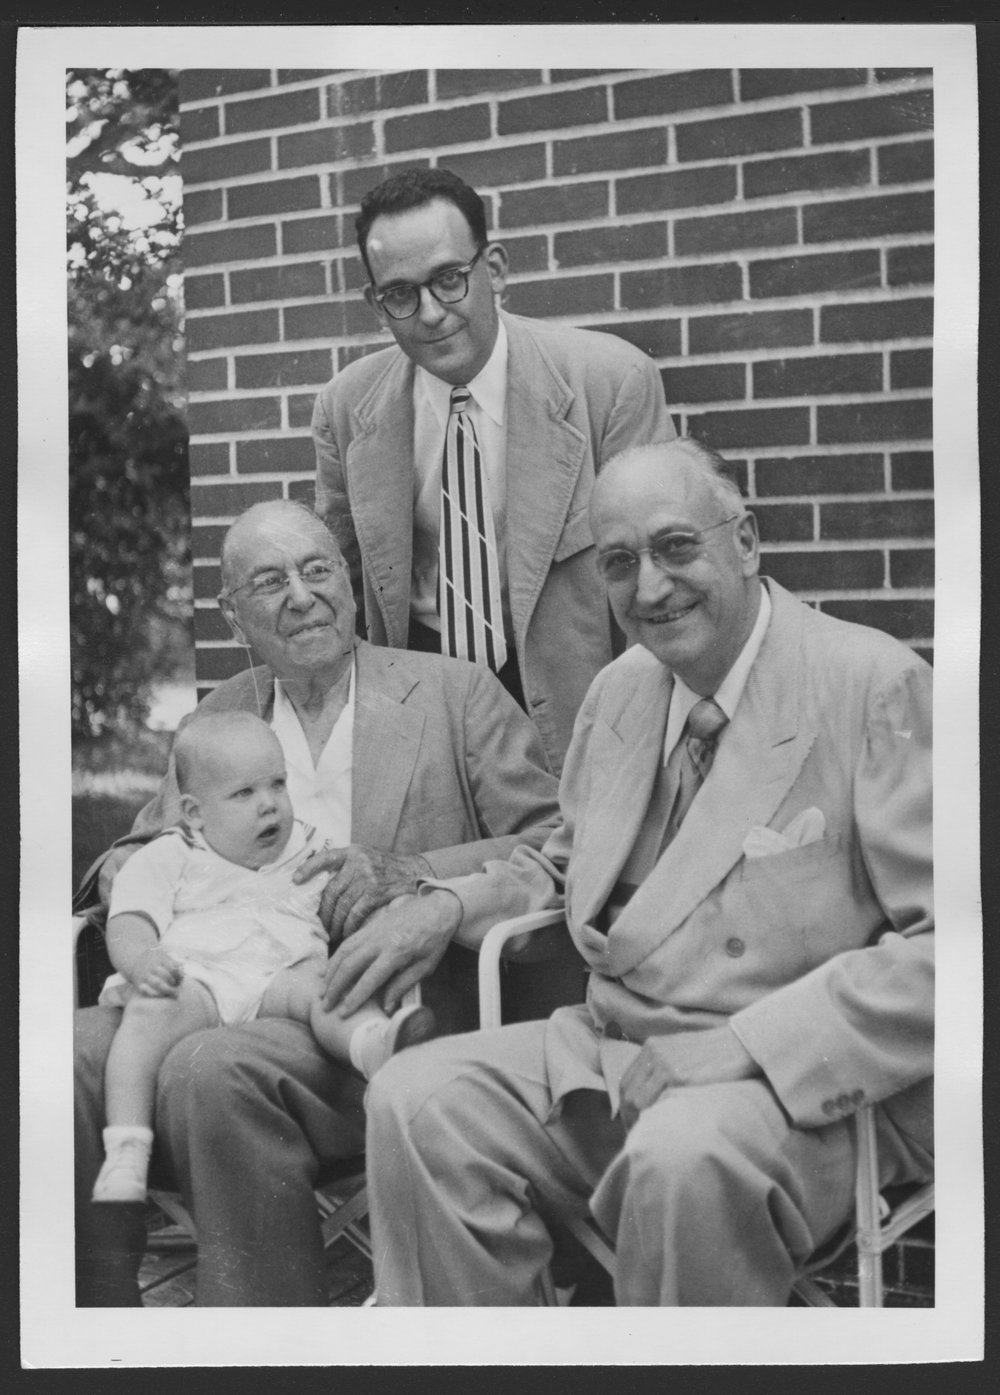 Karl A. Menninger, M.D. - Four generations of Menningers:  Karl Menninger, Jr., seated on the lap of his great grandfather, Dr. C.F. Menninger, Robert Menninger (standing) and Dr. Karl in 1952.